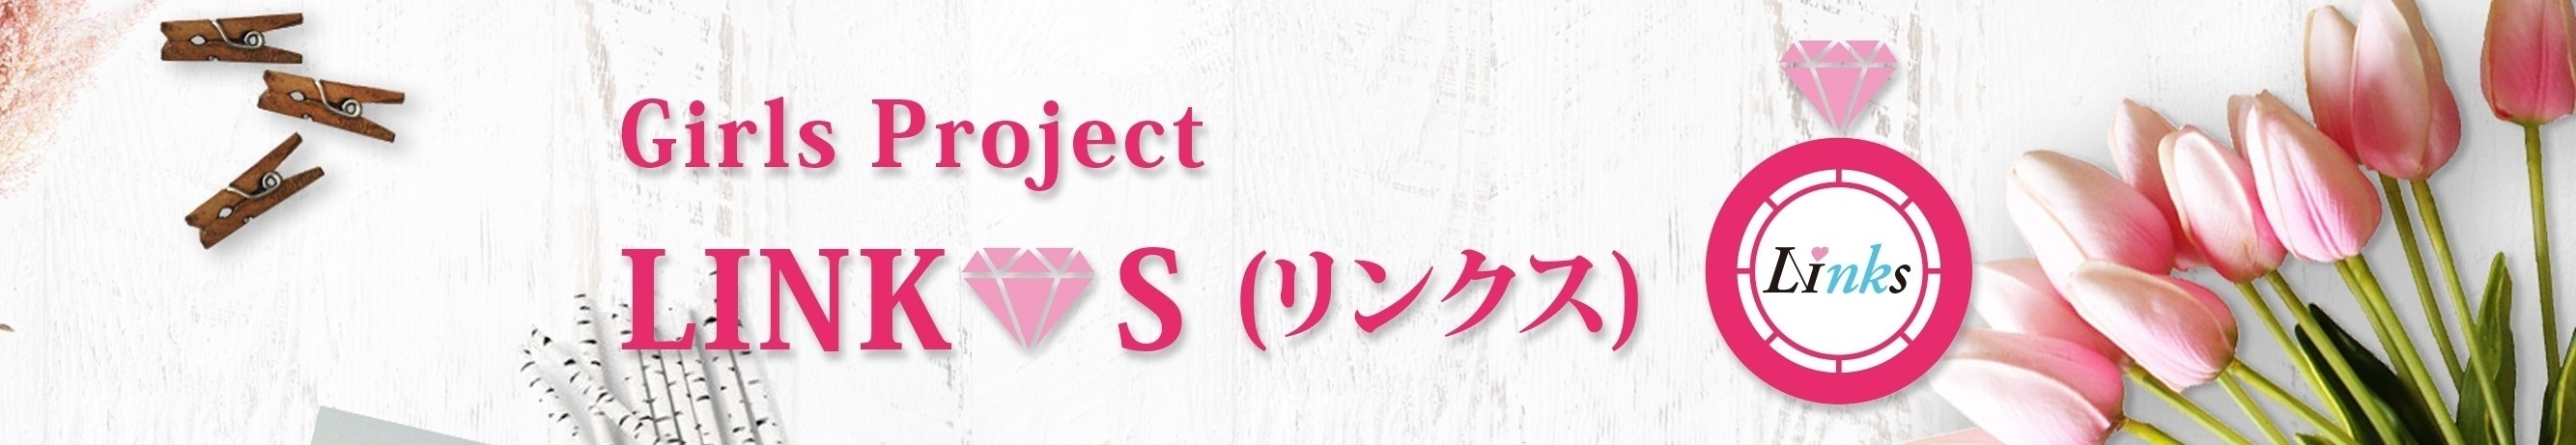 girls project LINK-S.私達は、ネッツトヨタ熊本 Girls Project LINK-S(リンクス)です。